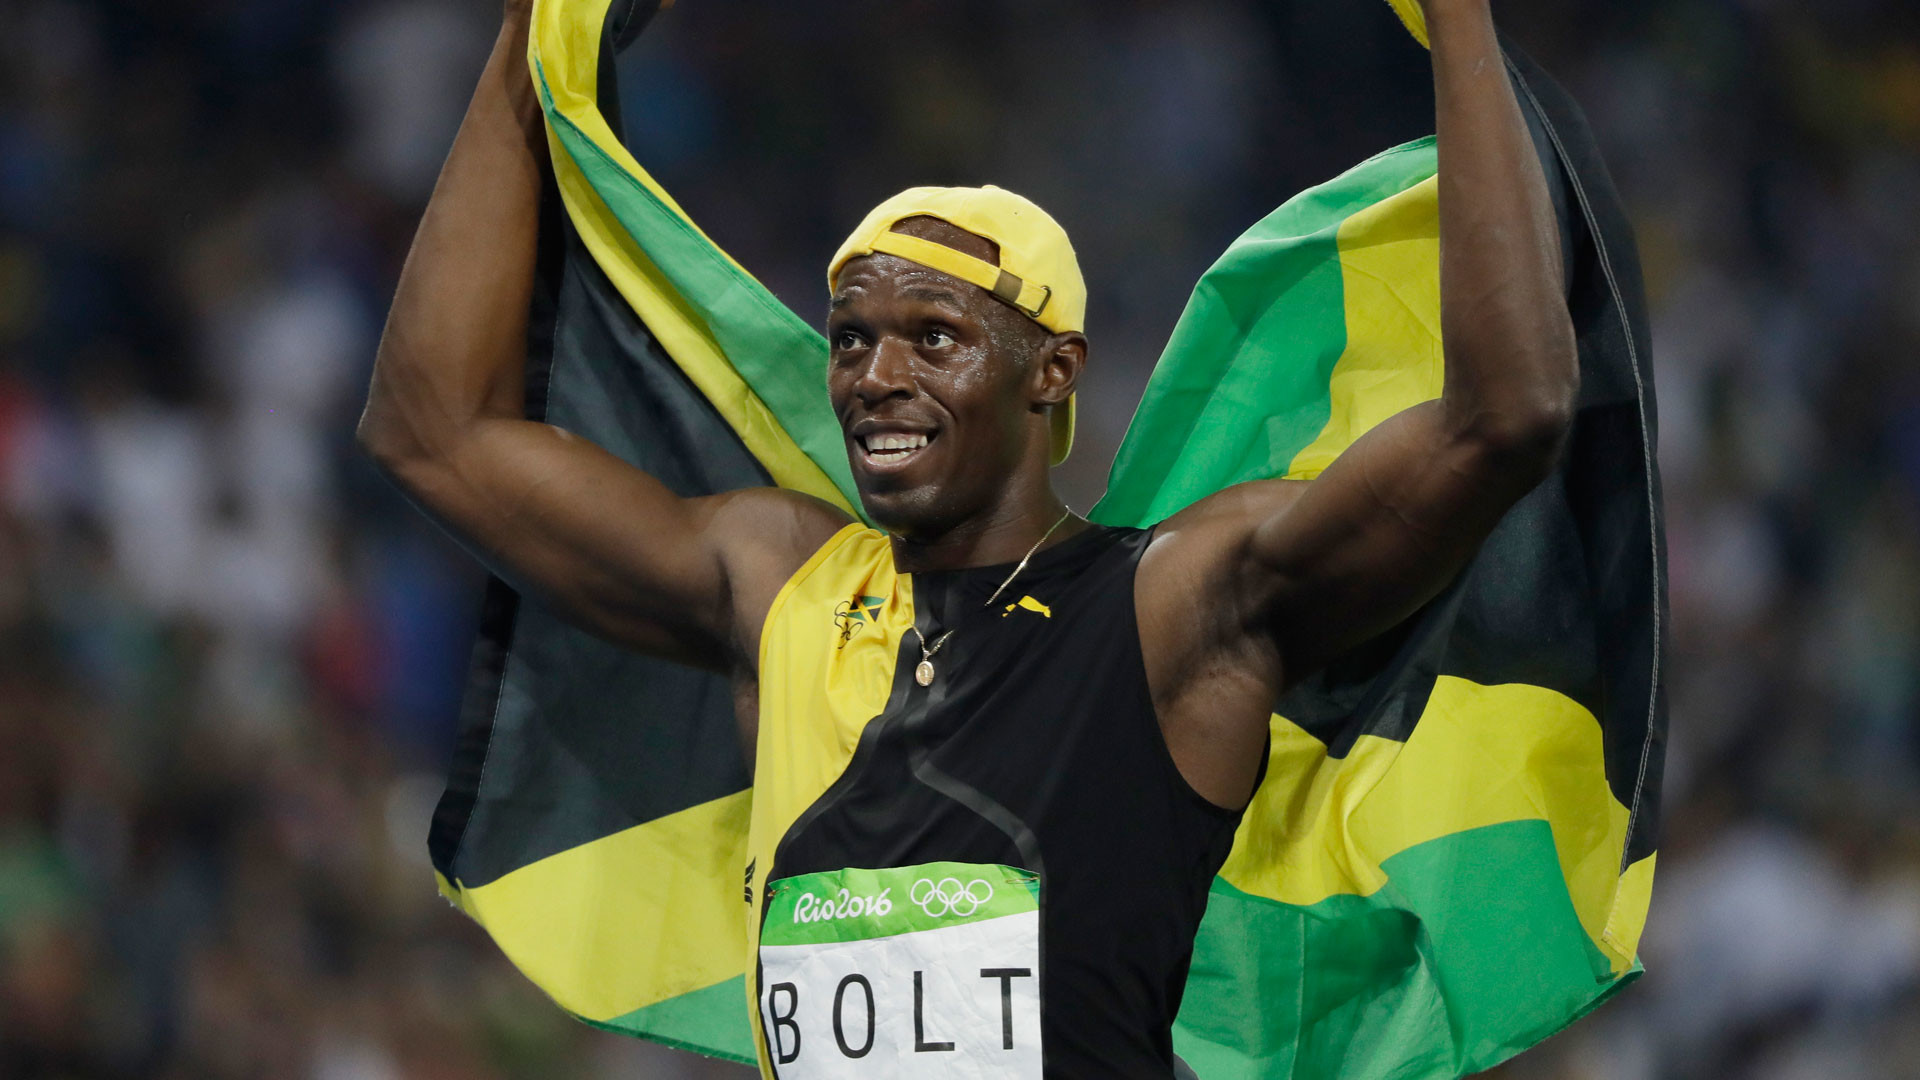 1920x1080 Usain Bolt wins unprecedented third Olympic 100m gold medal | NBC Olympics